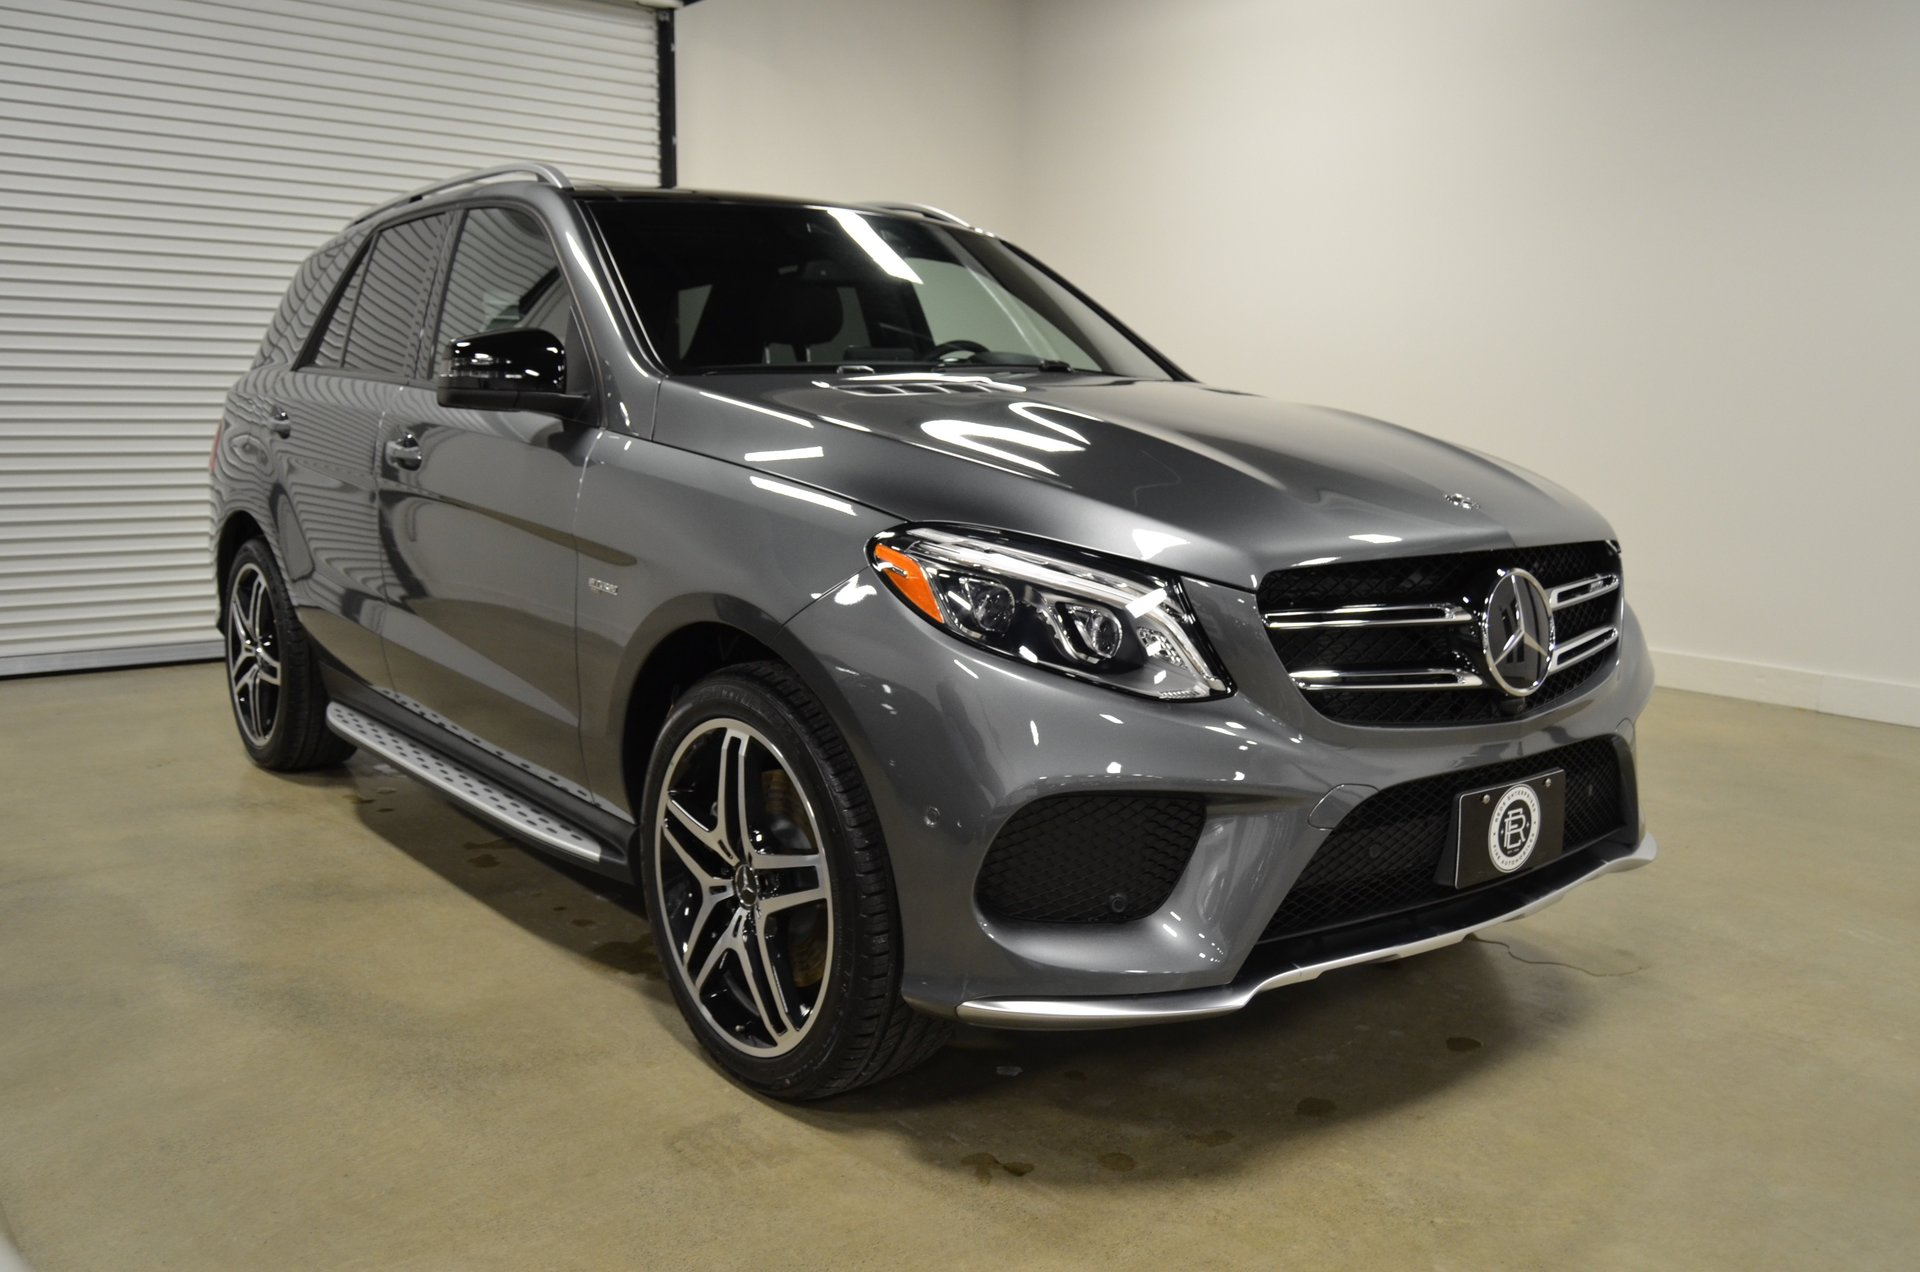 2018 mercedes benz gle43 amg reds enterprises for Mercedes benz 2018 amg